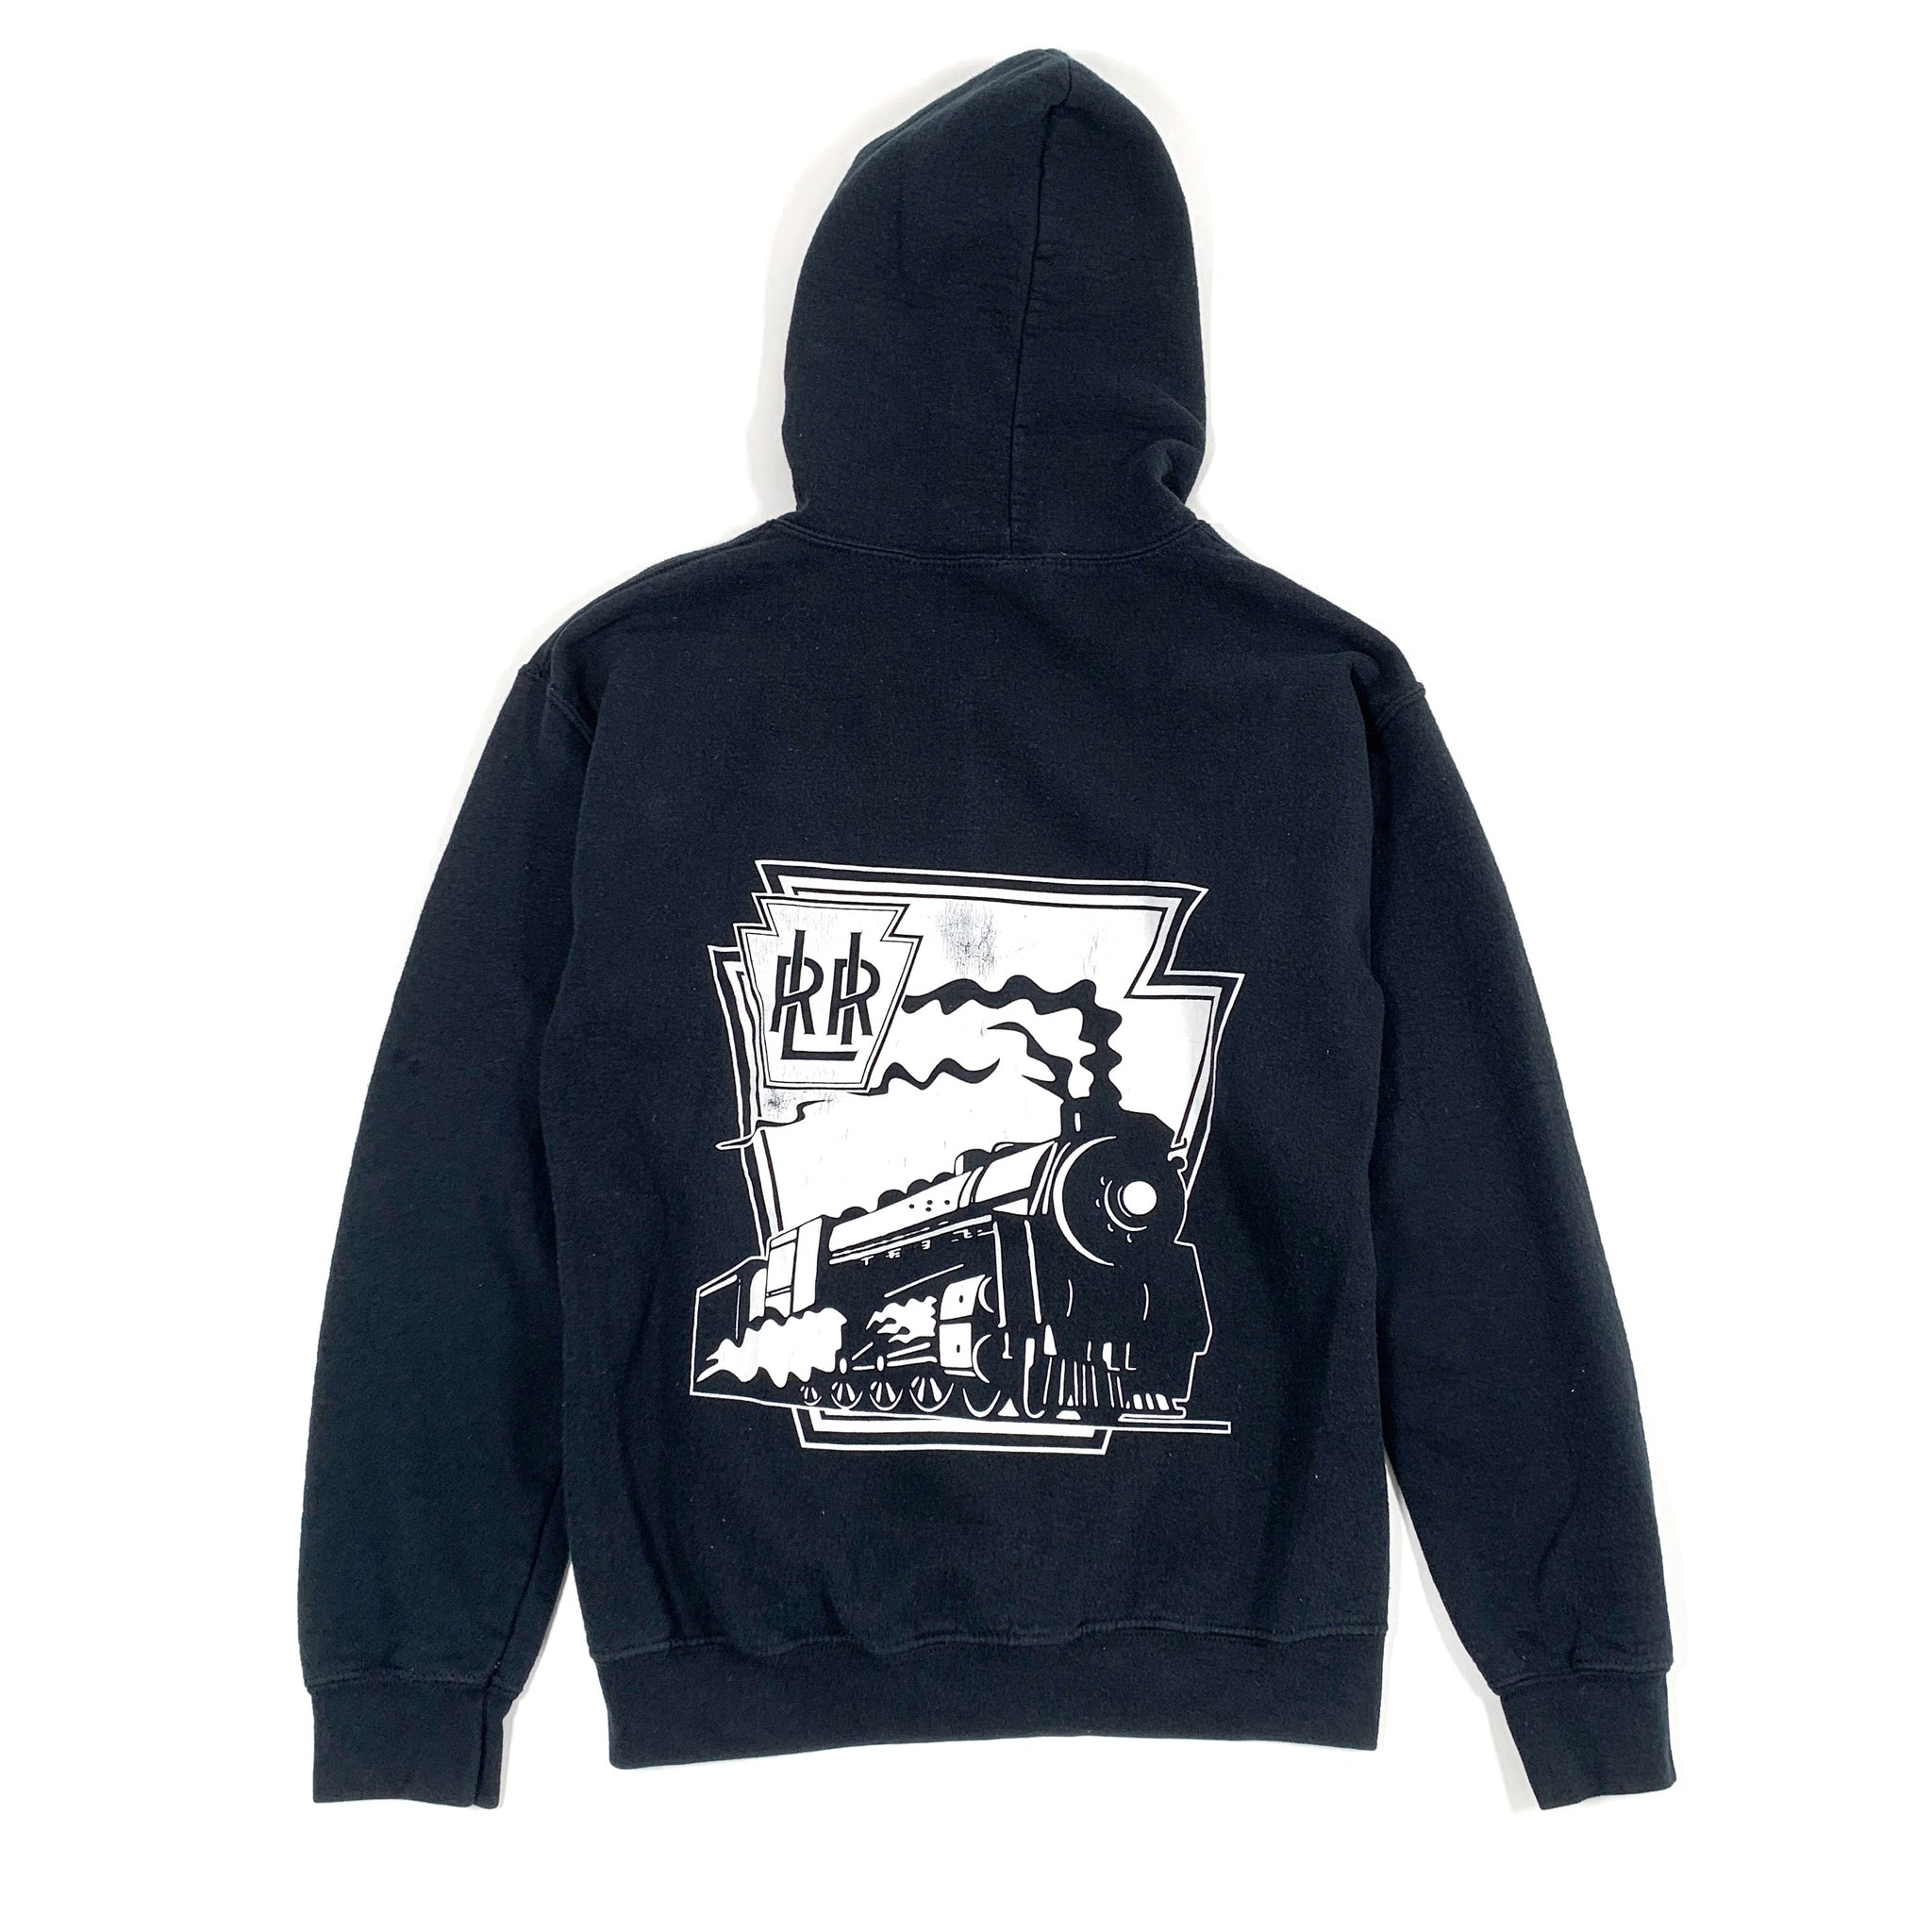 Long Island Rail Road Zip Sweatshirt (S)